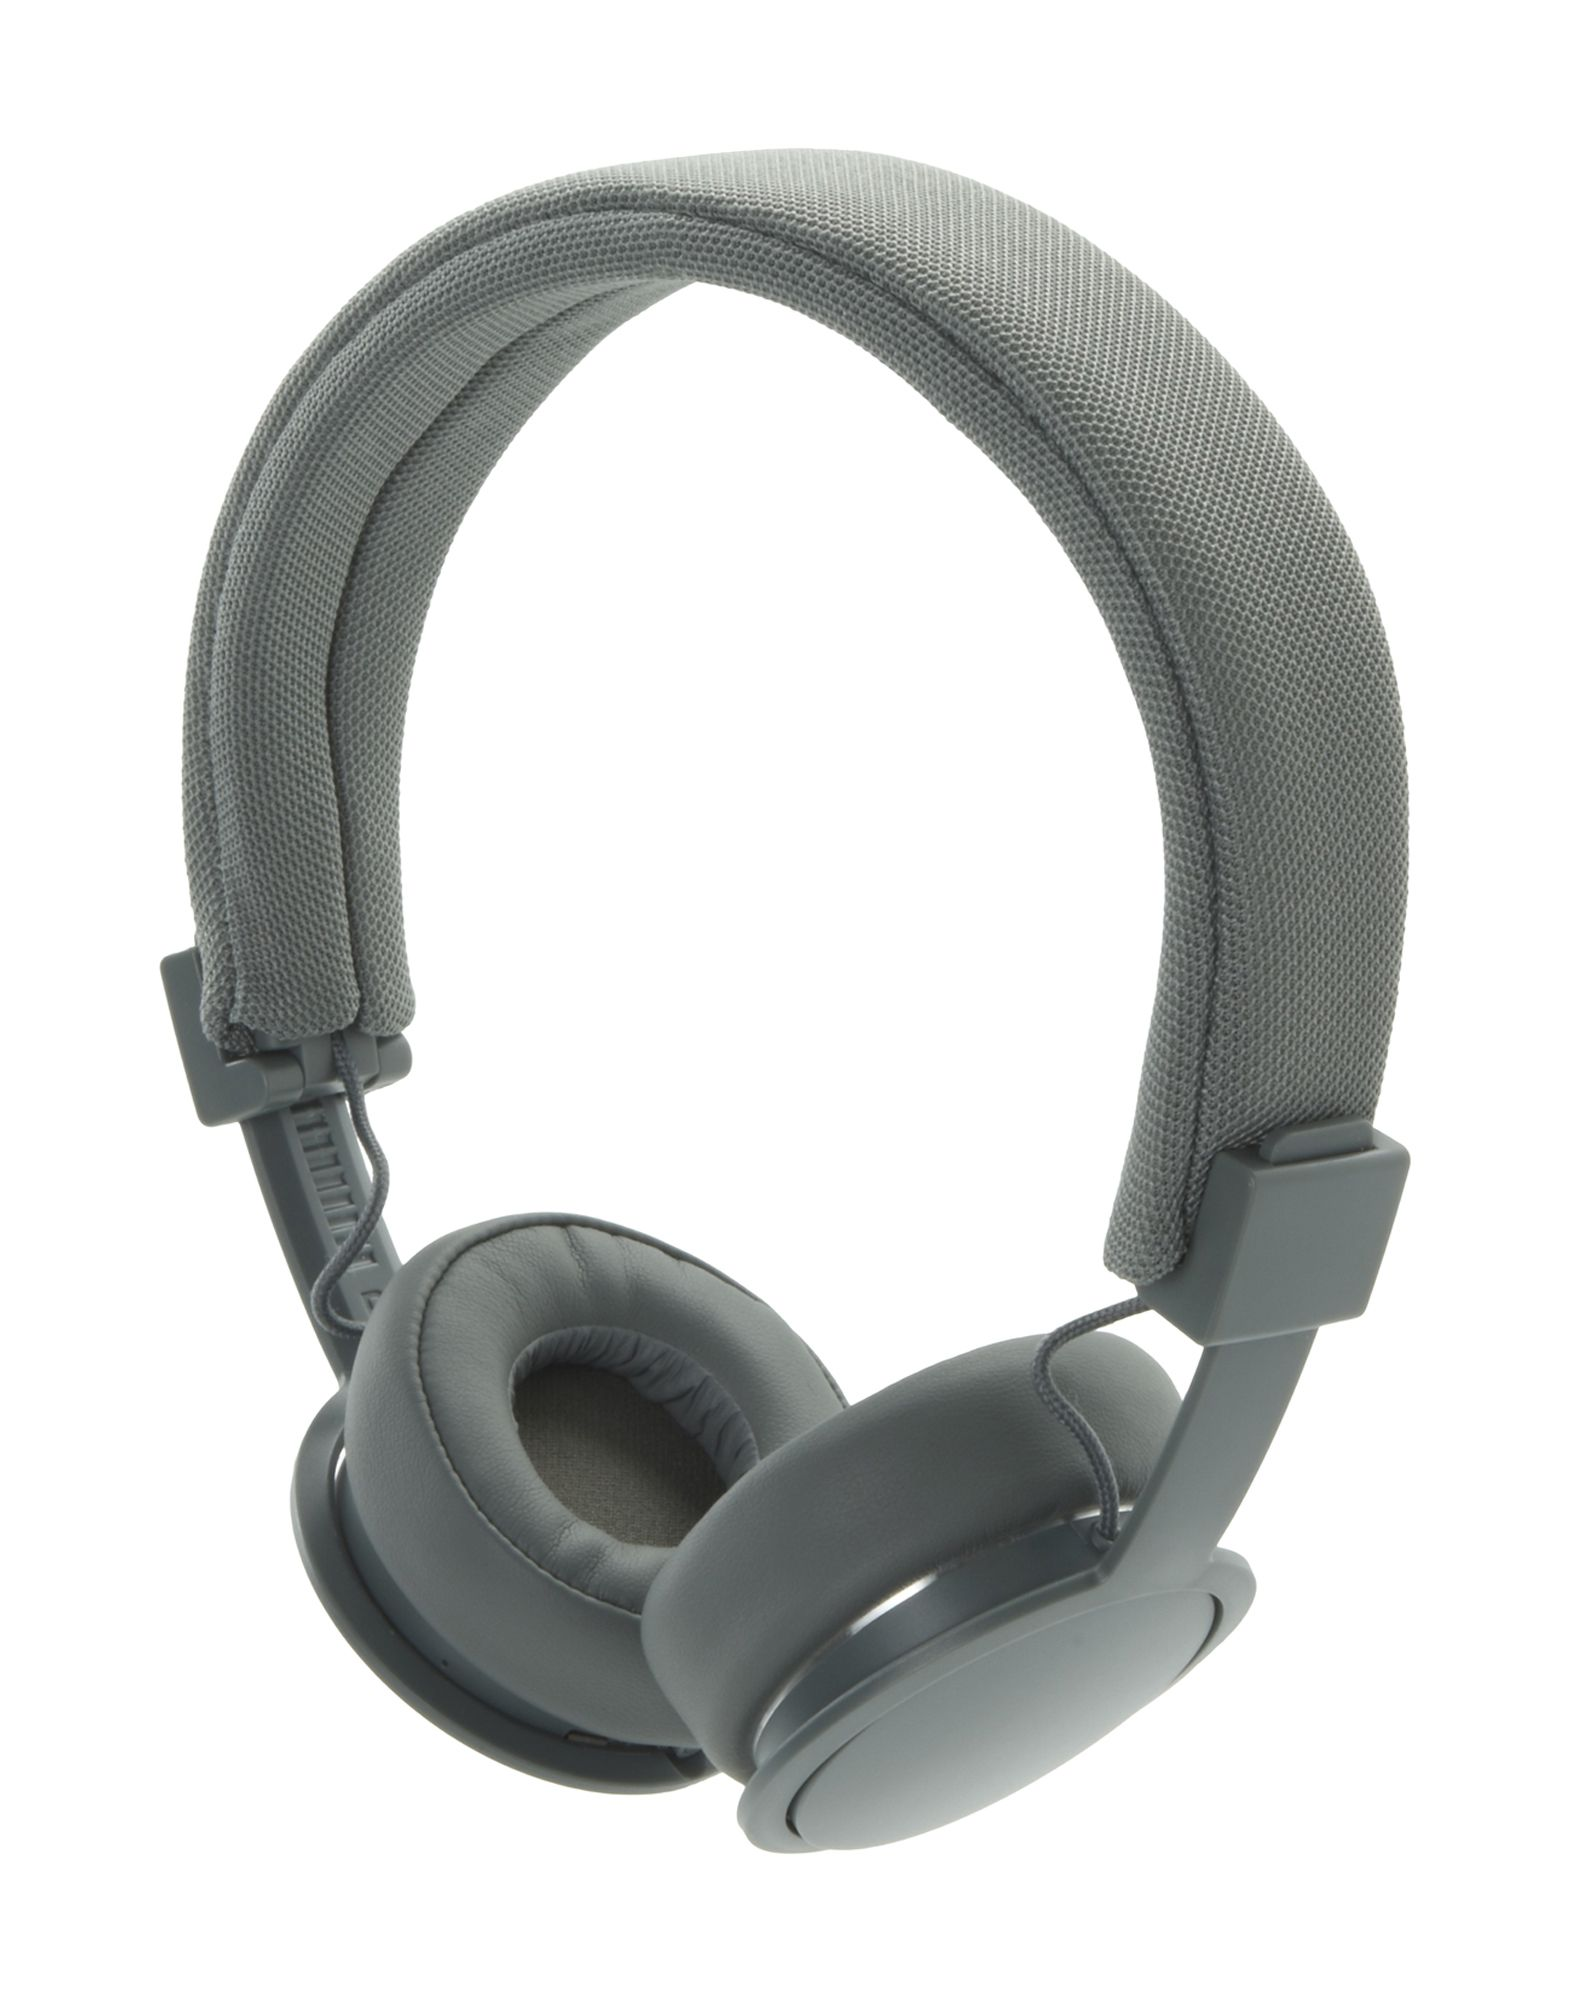 Plattan Adv Wireless - Cuffie Urbanears - DESIGN+ART Urbanears - Acquista online su